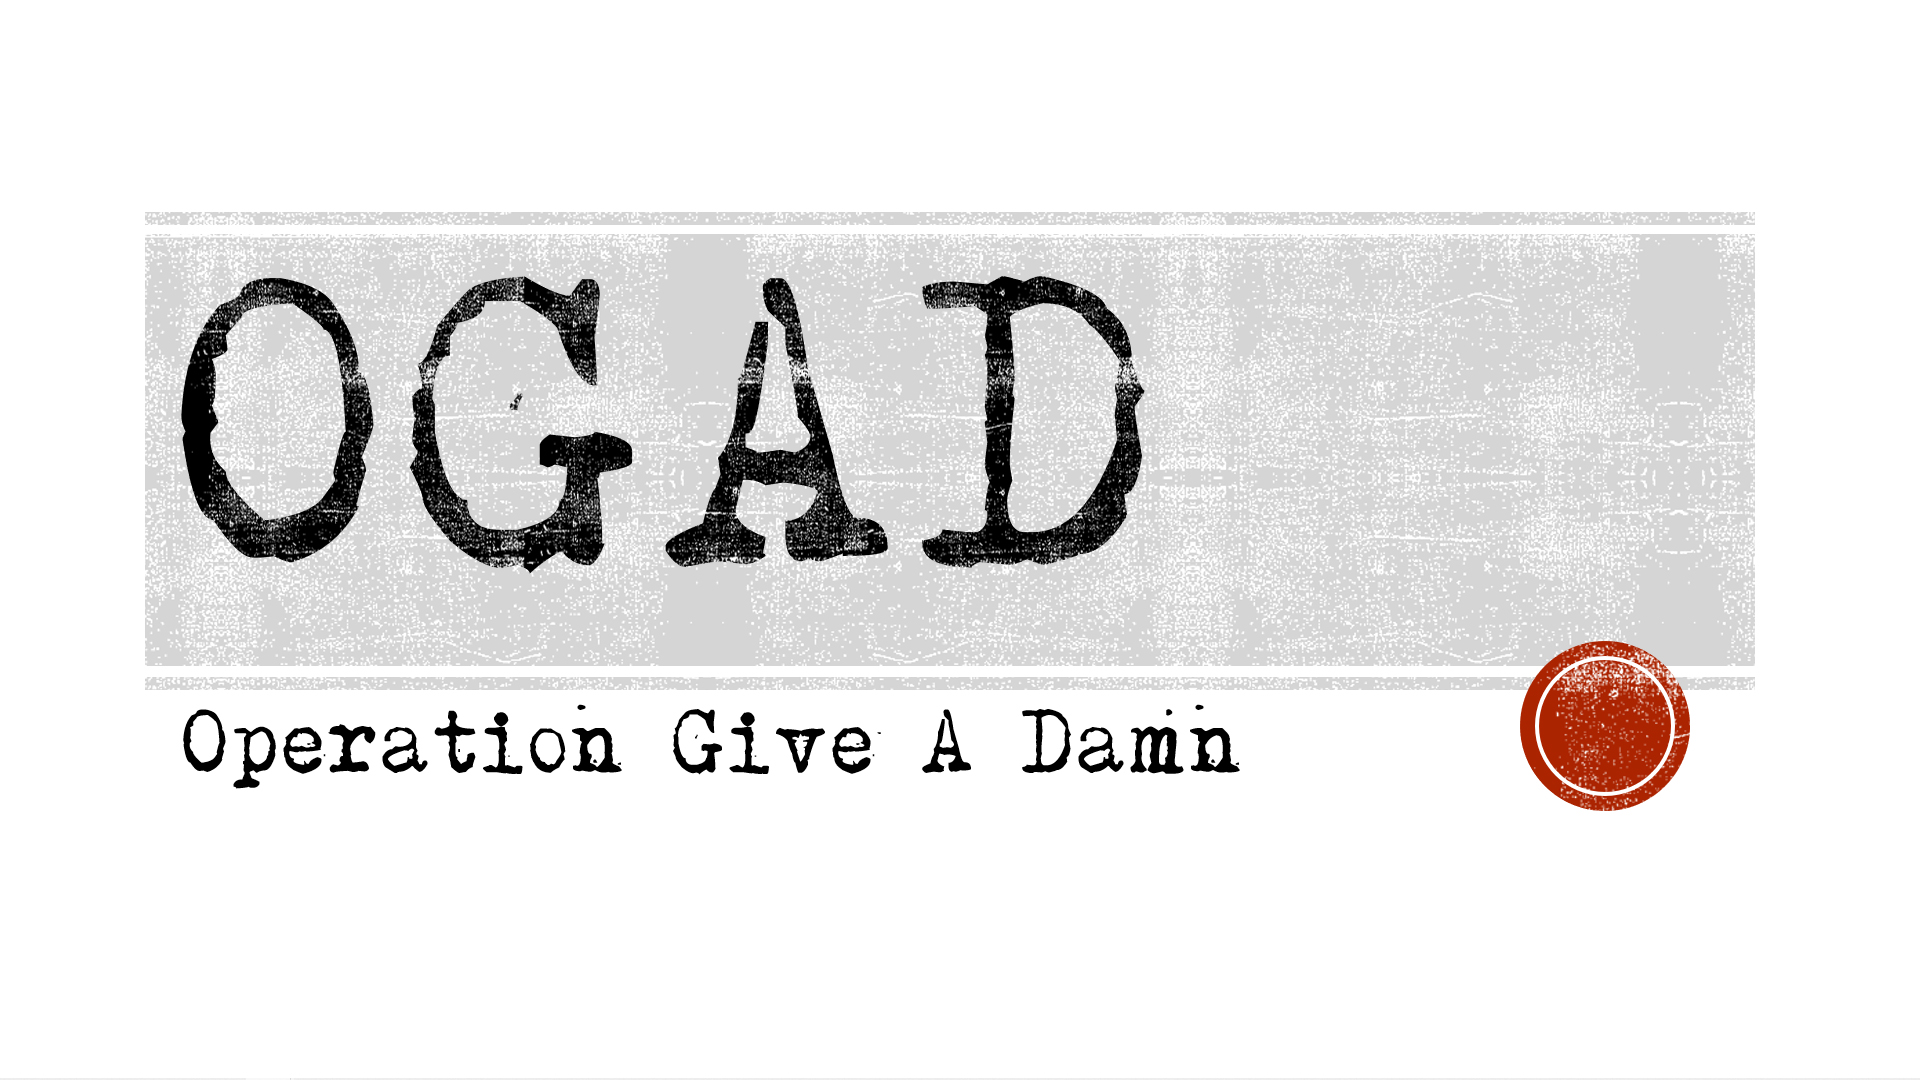 OGAD Image for Blog Entry